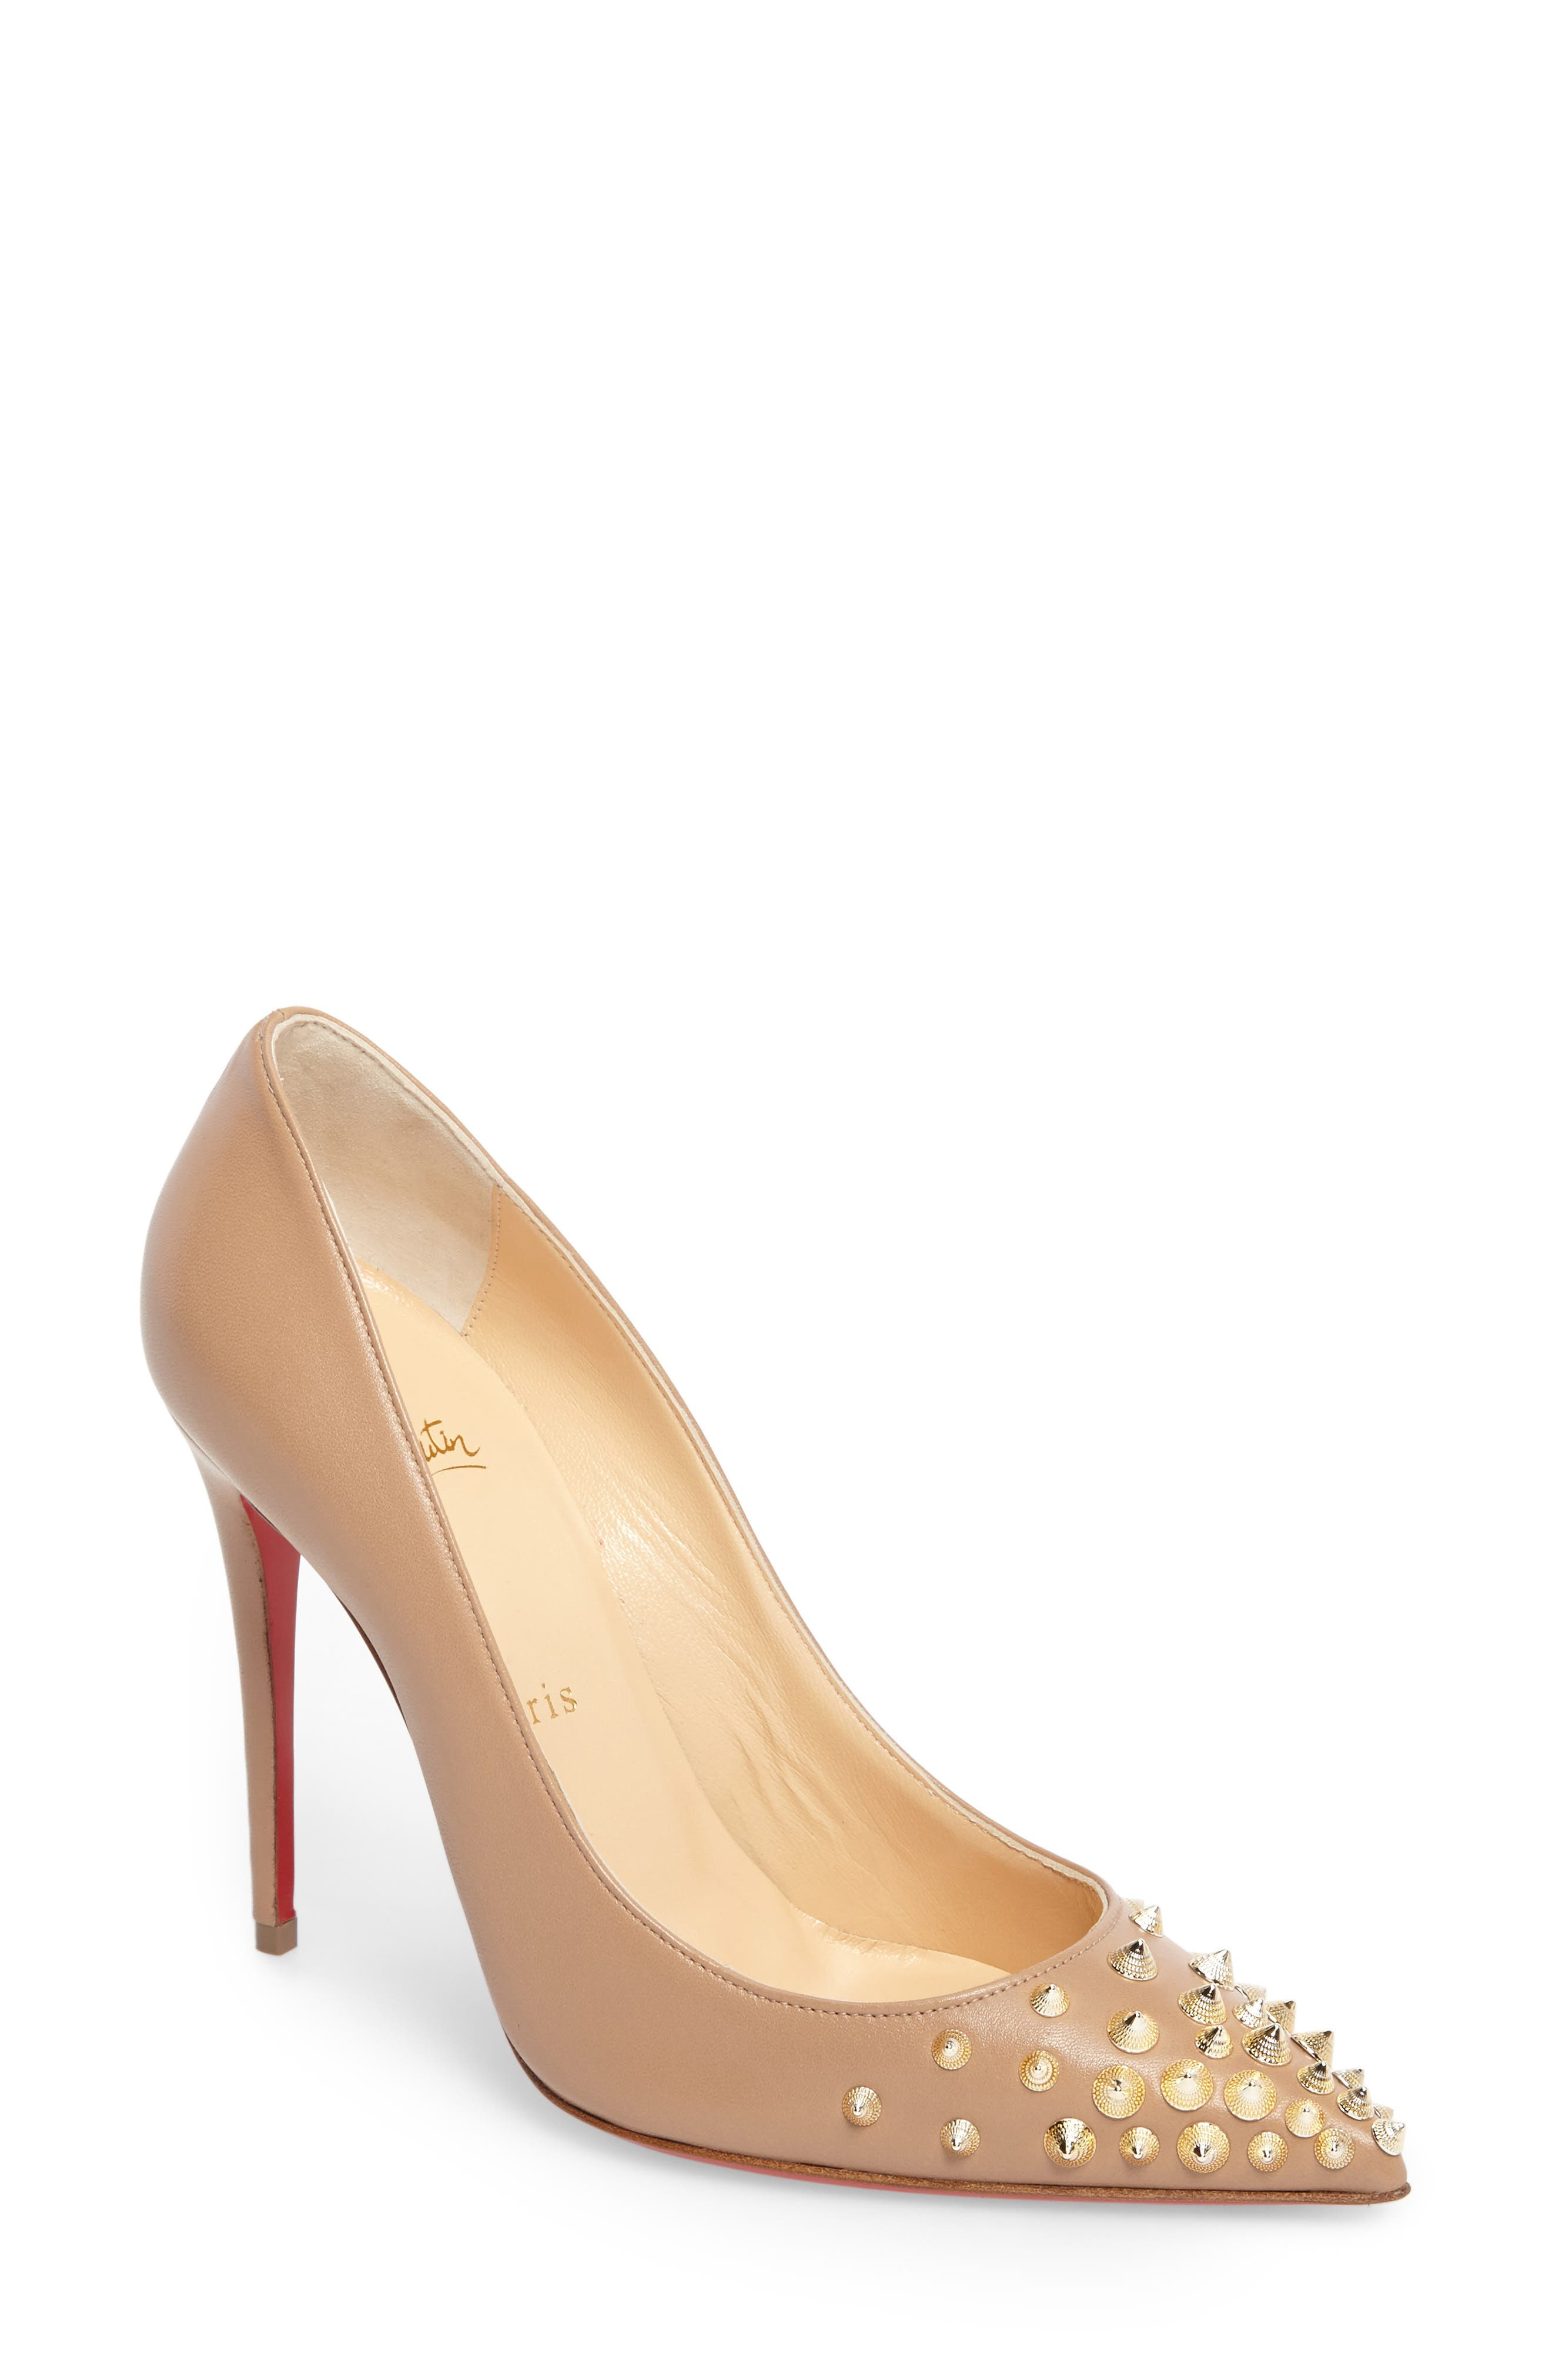 Christian Louboutin Spikyshell Pump (Women)